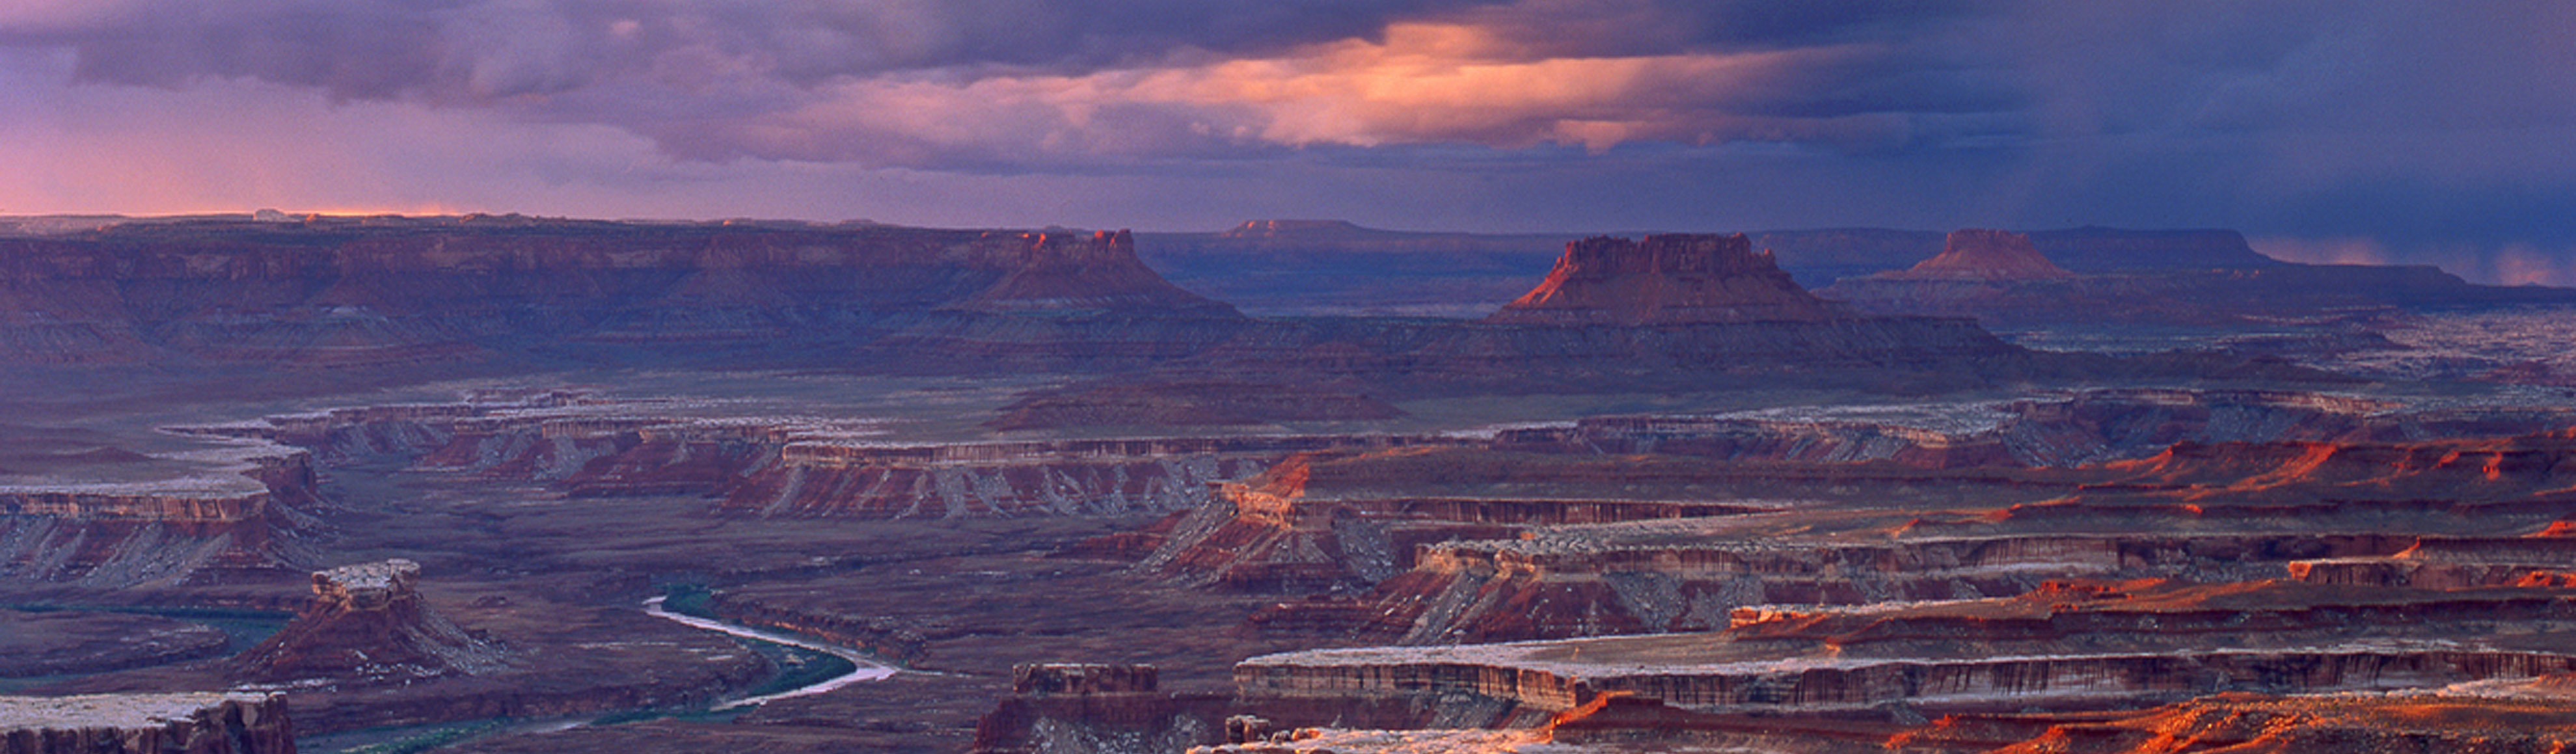 Landscape picture of Canyonlands National Park, Utah